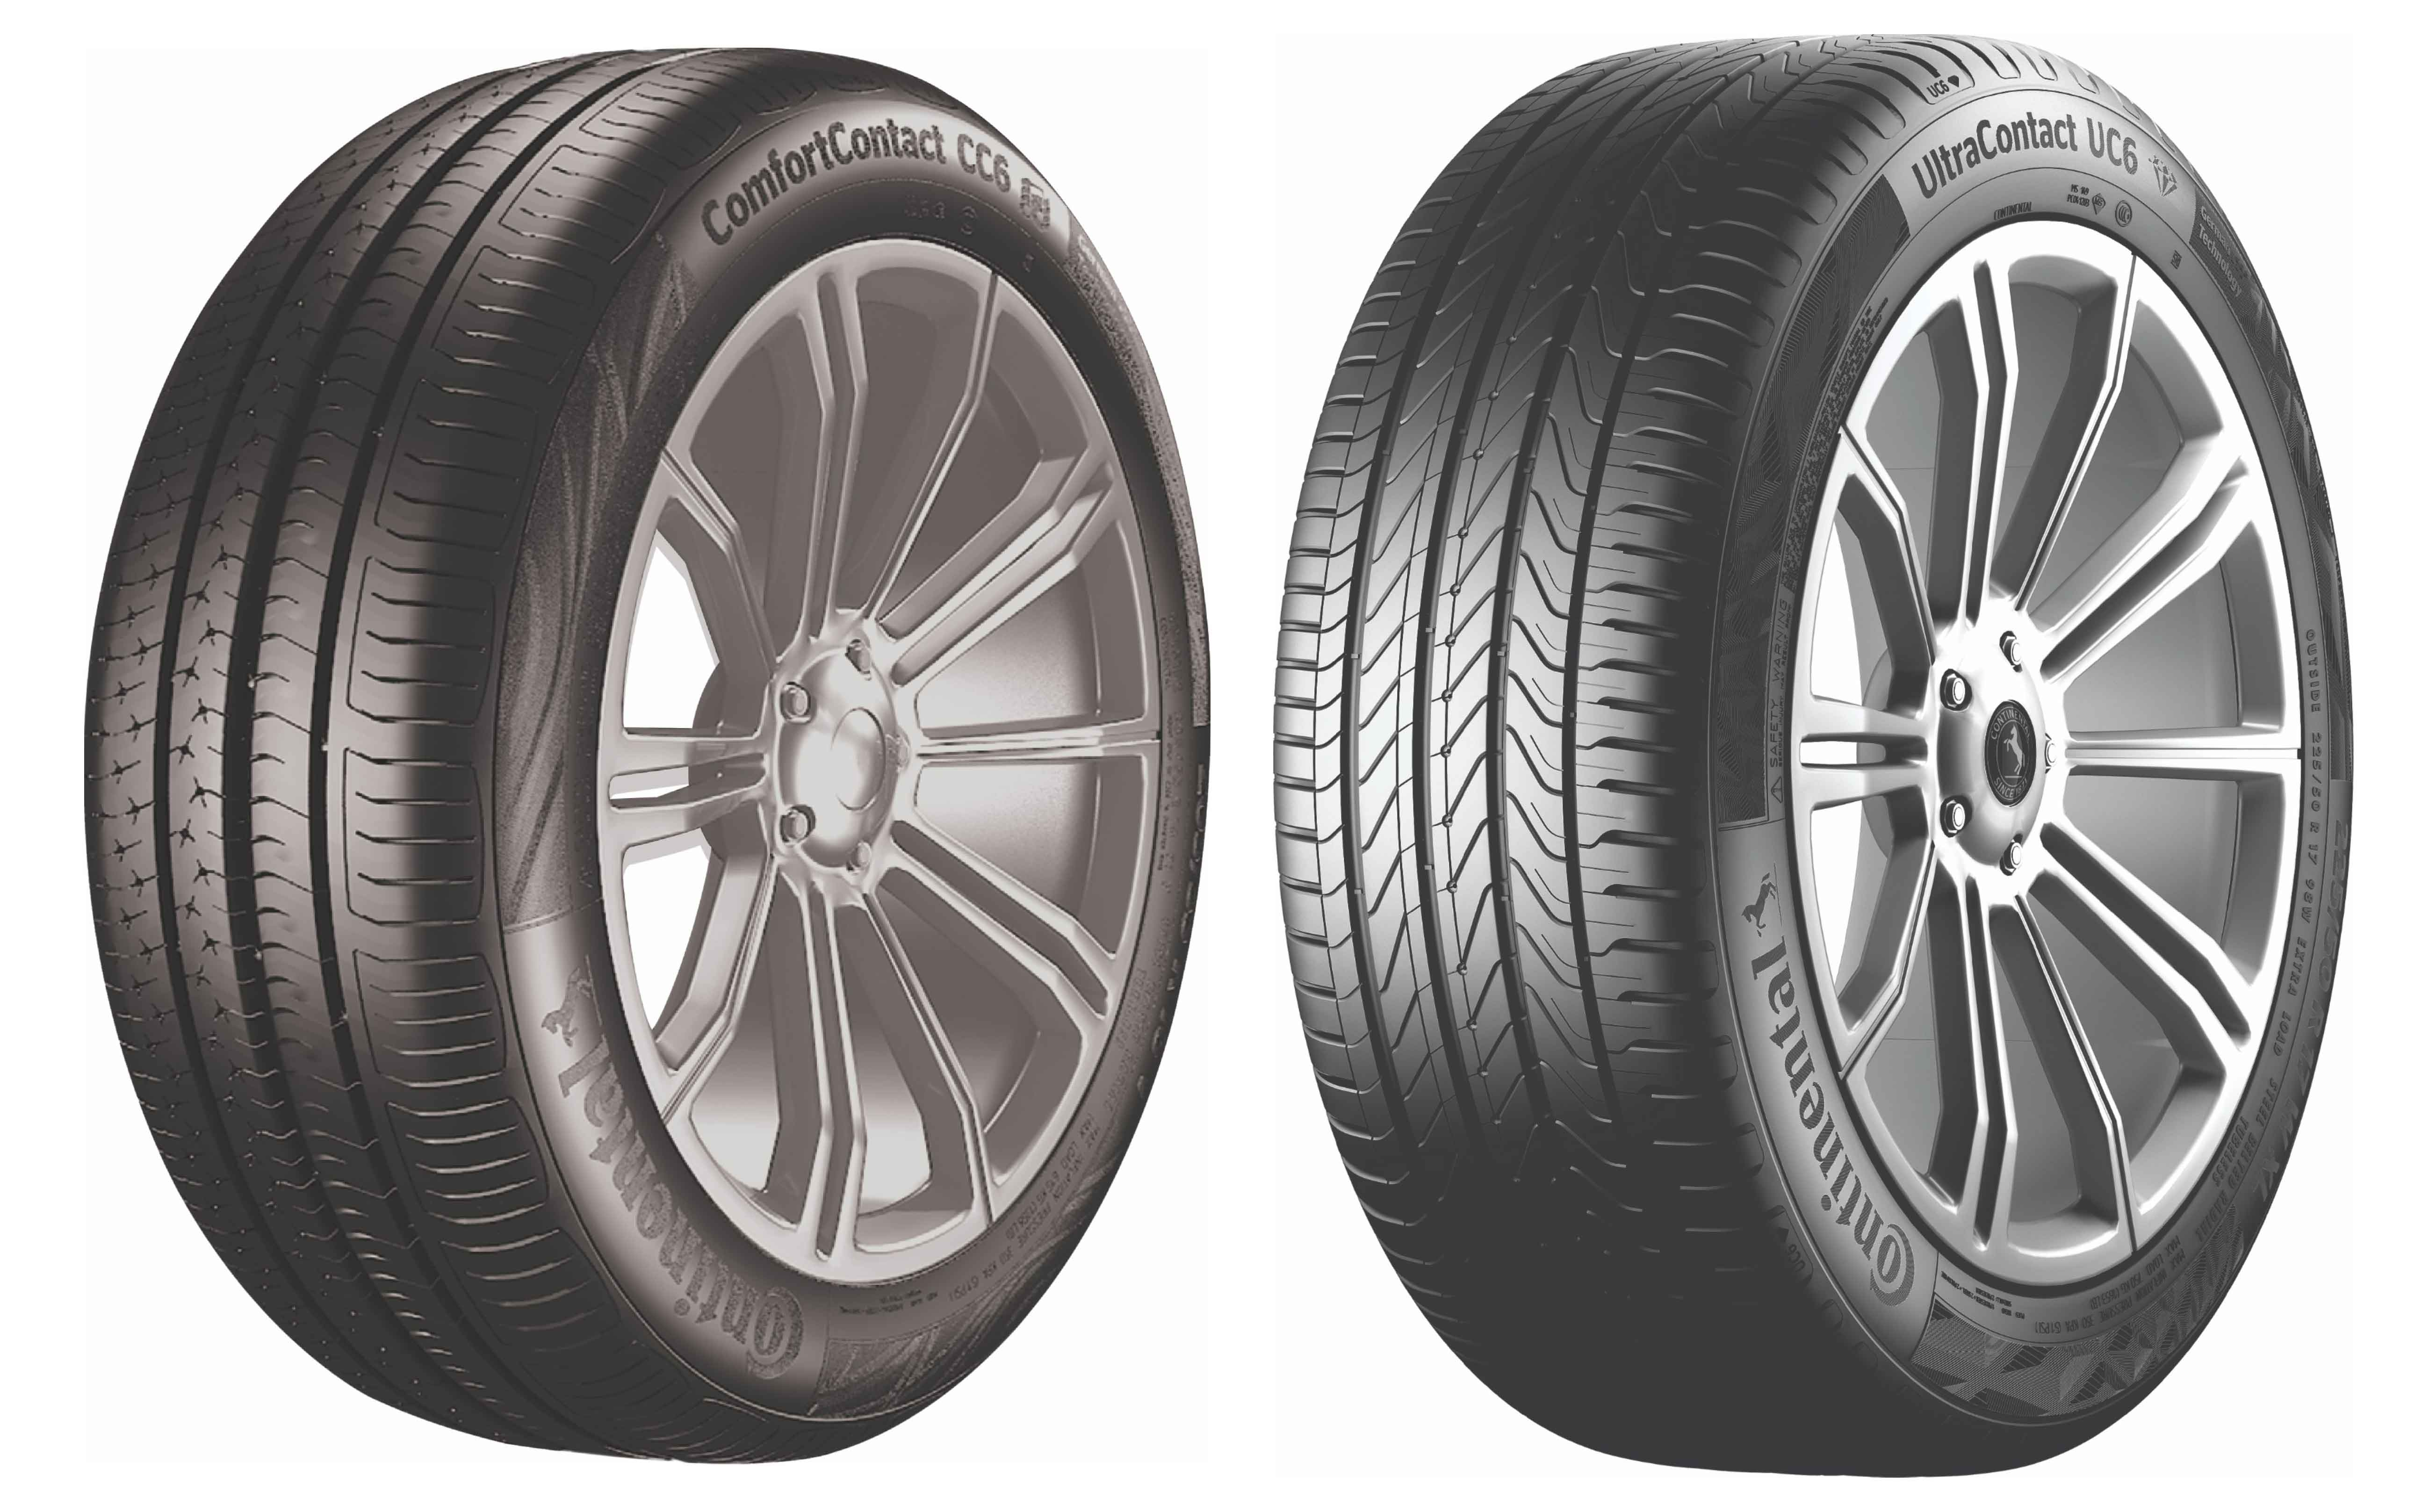 Continental's Robust Generation 6 Tires are Designed for Indian Road Conditions